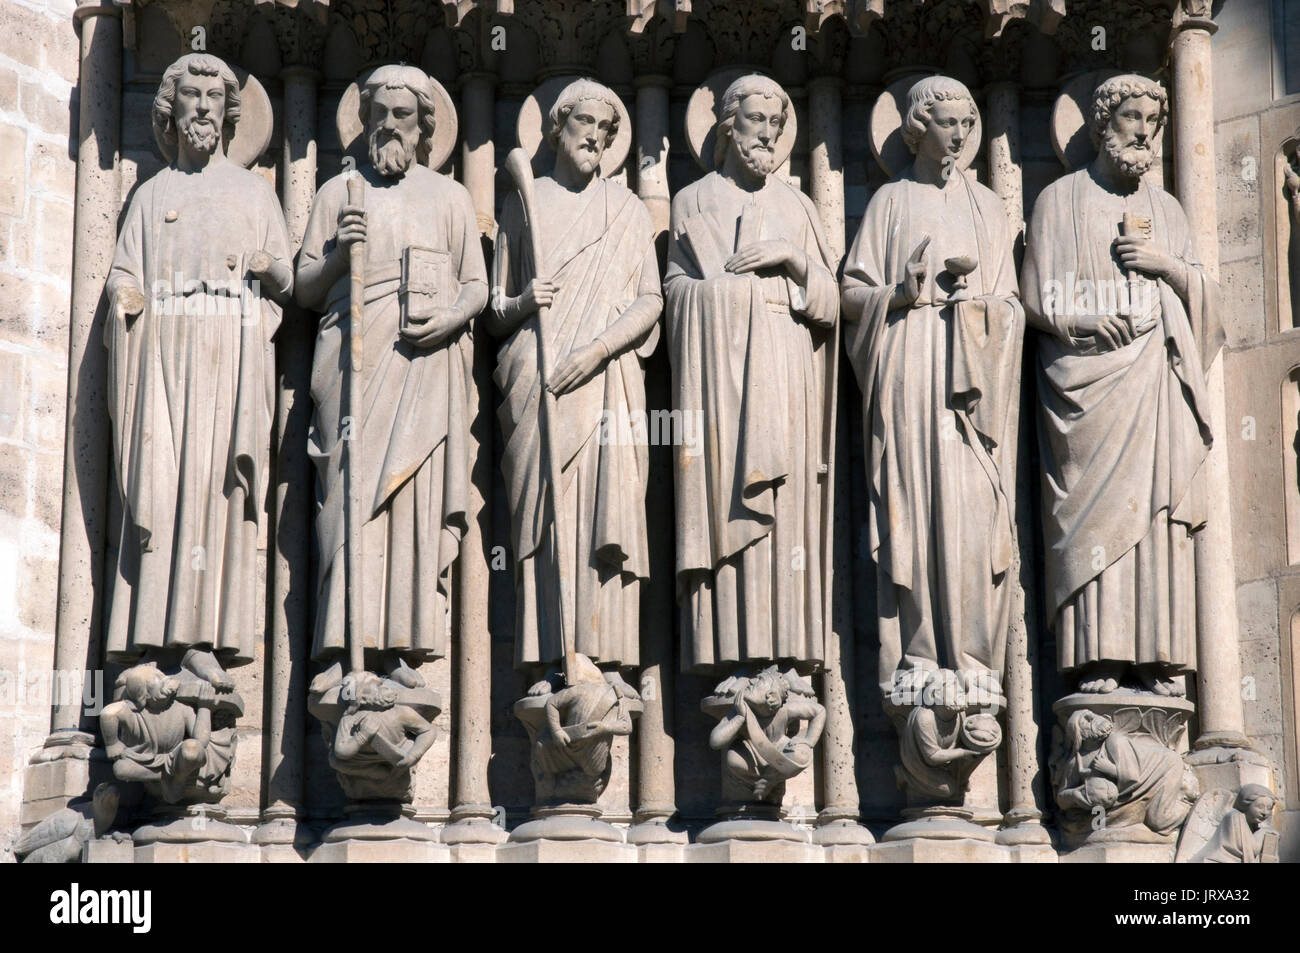 central portal jamb statues Stock Photo